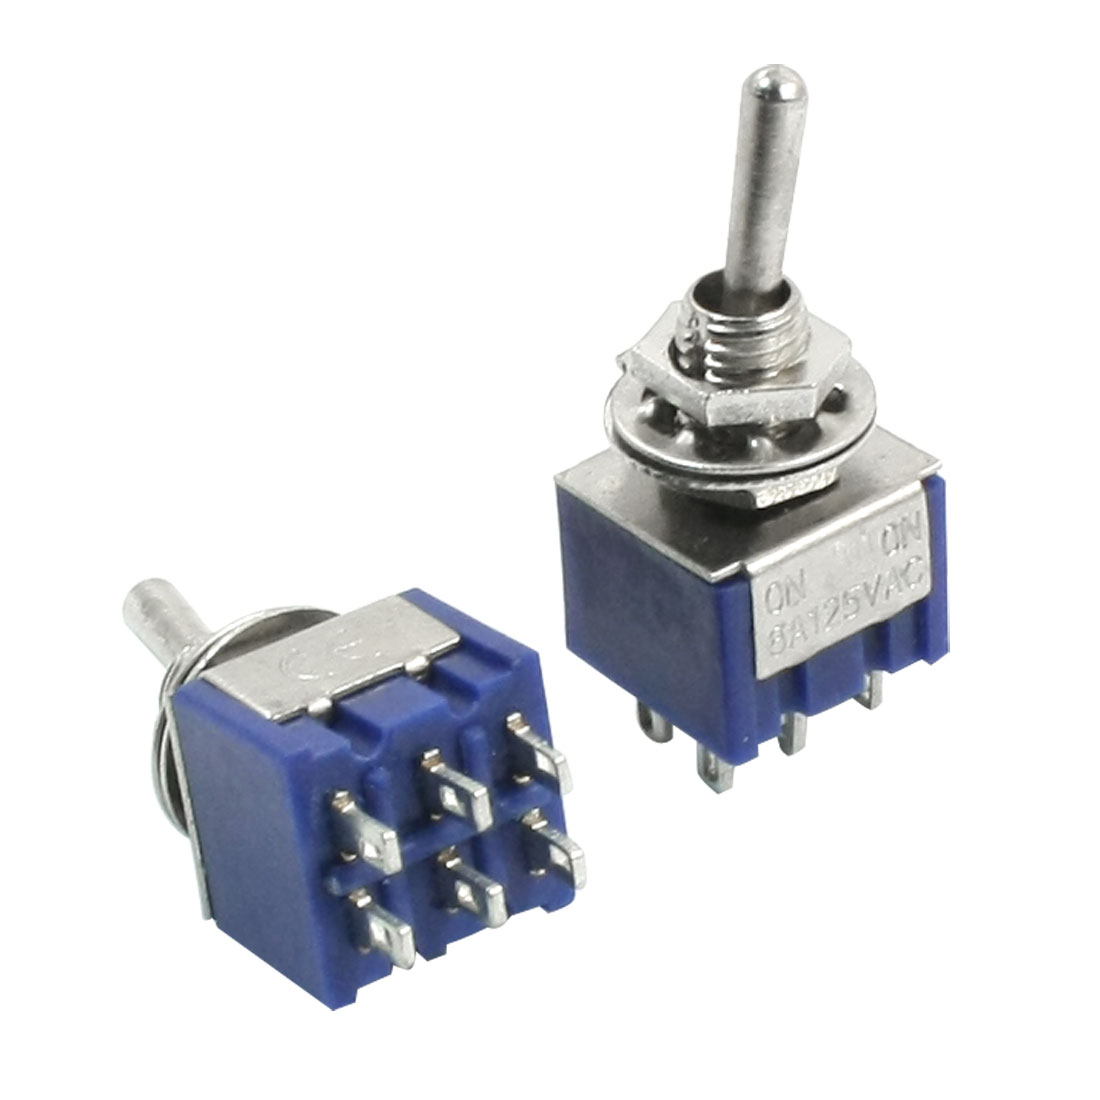 DPDT ON/ON 2 Position 6 Pin Electric Part Toggle Switch AC 125V 6A Blue 2pcs